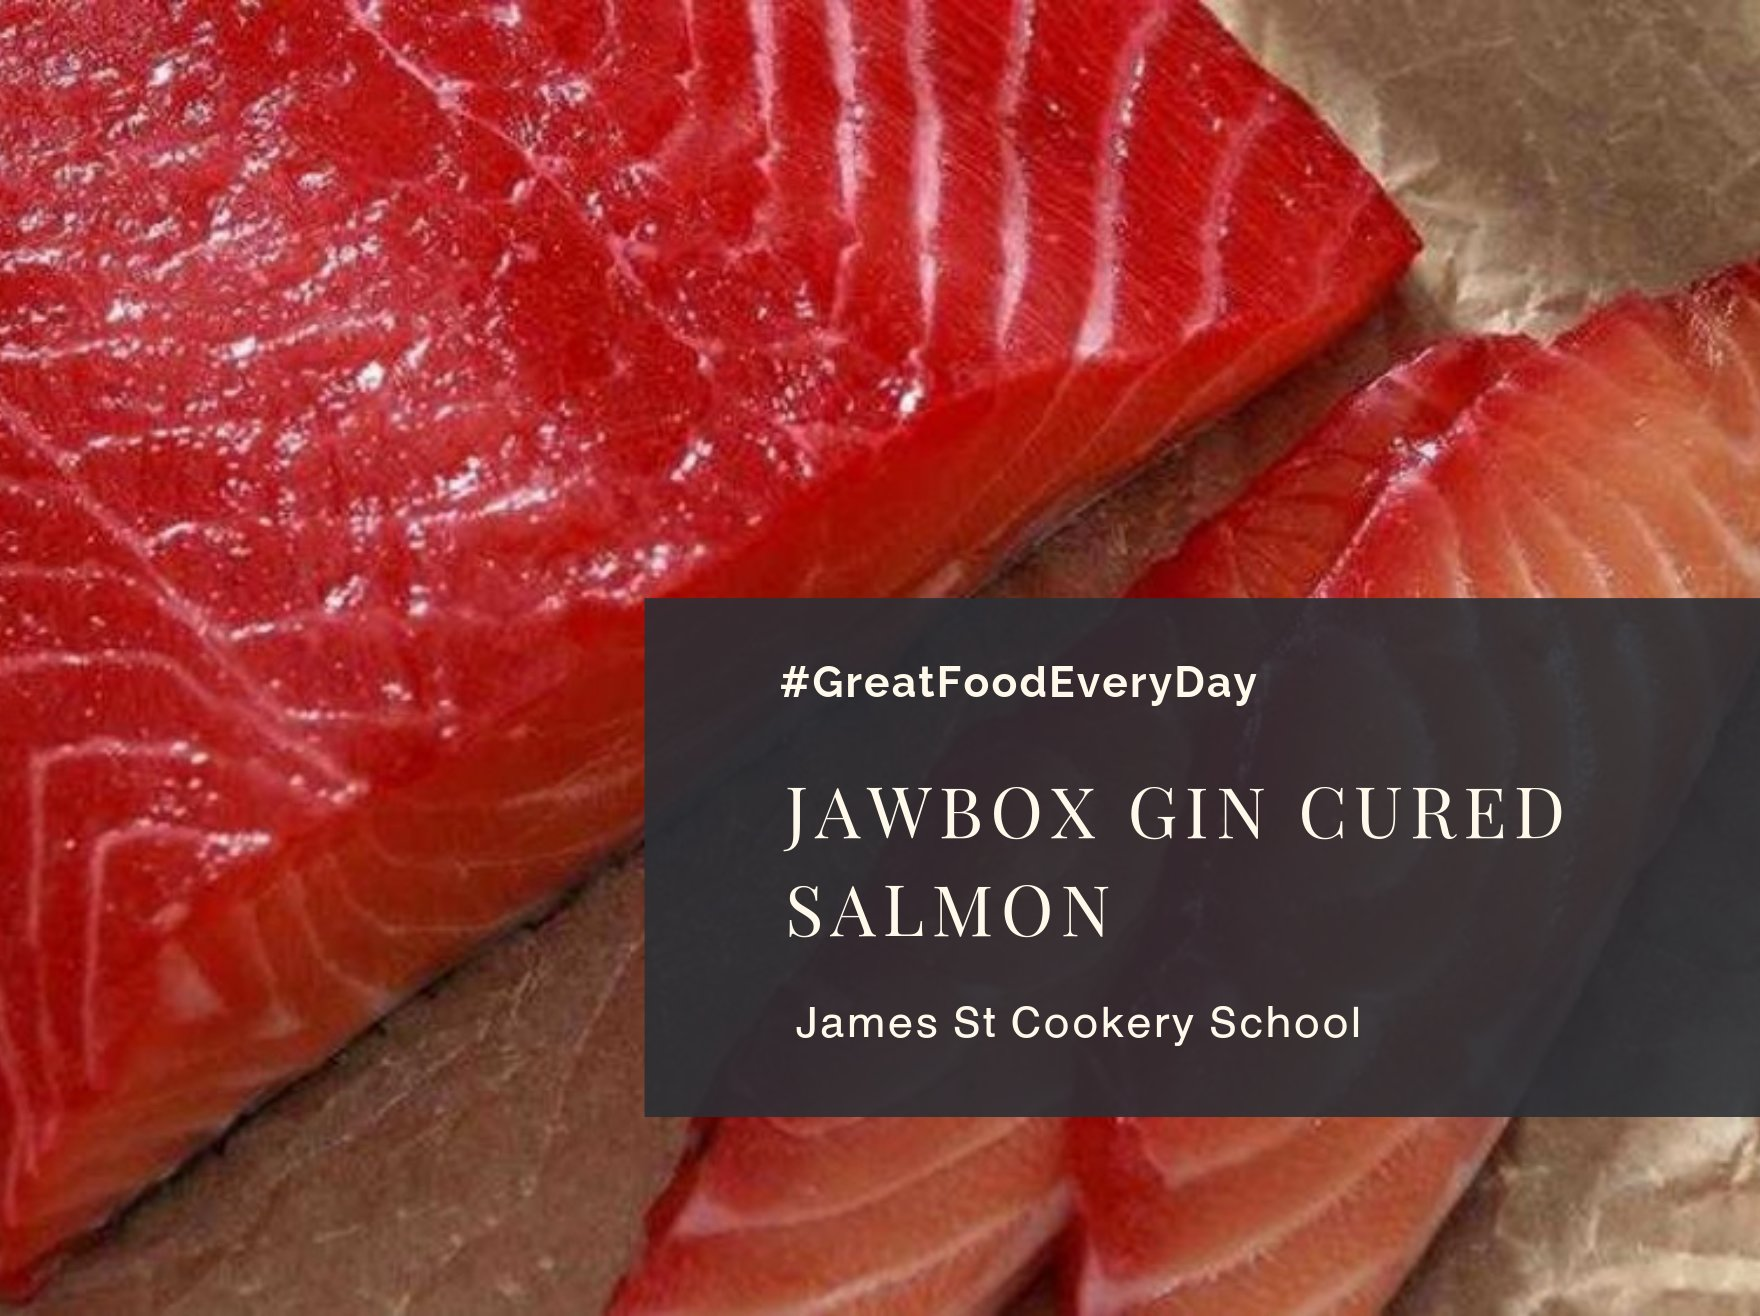 Jawbox Gin Cured Salmon